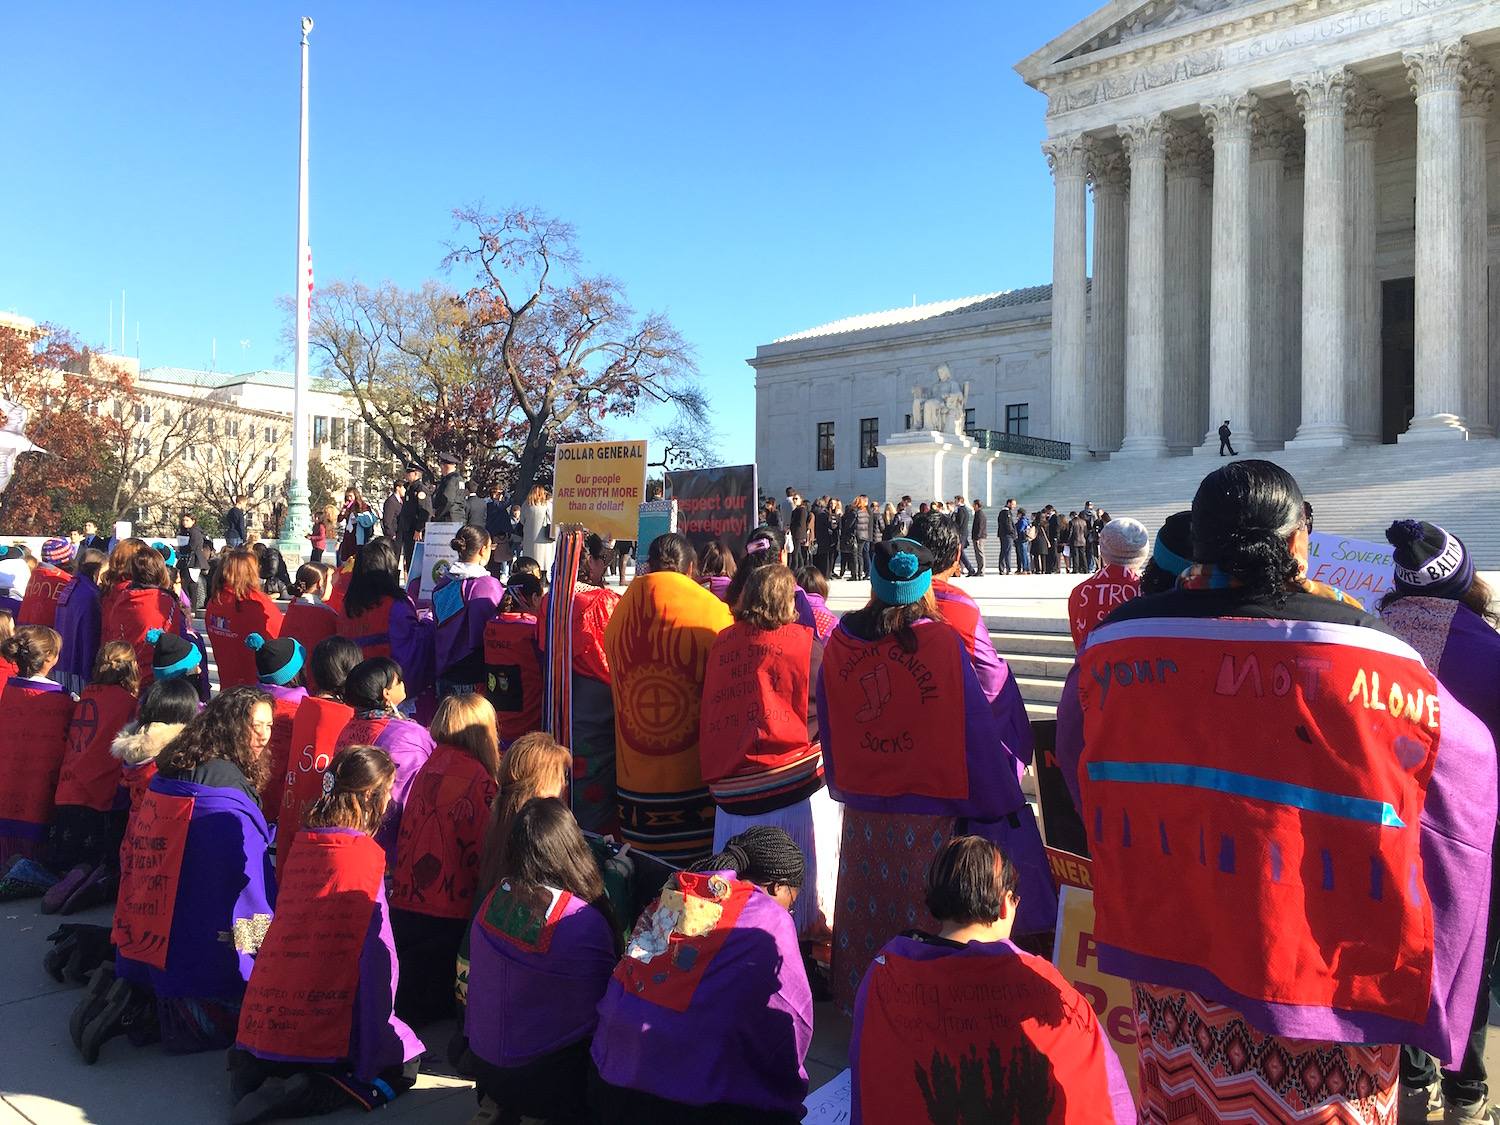 Still no decision from Supreme Court in tribal jurisdiction dispute